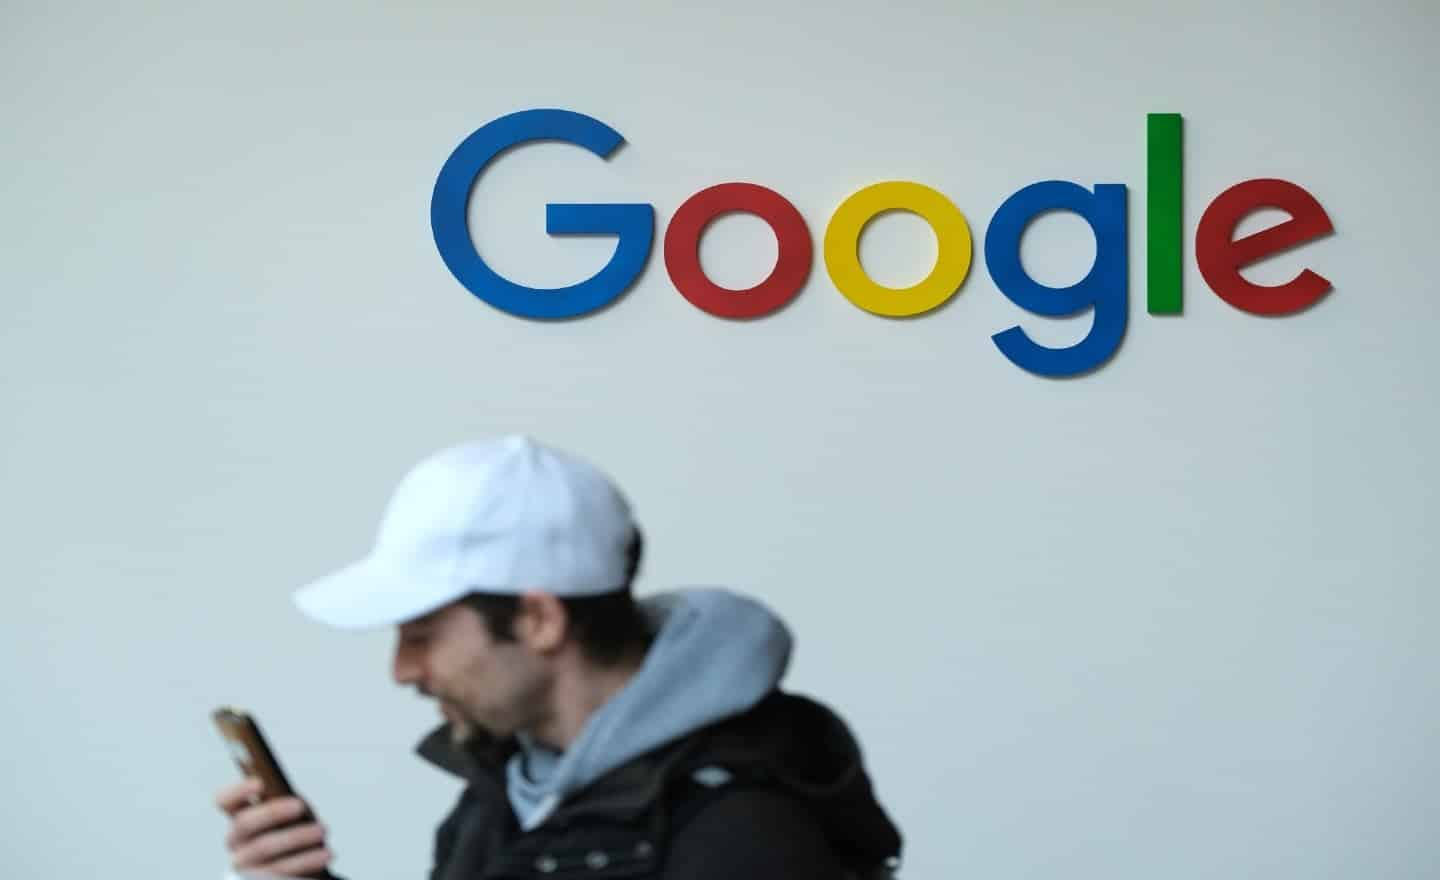 Google's coronavirus information website launch will be delayed to later this week